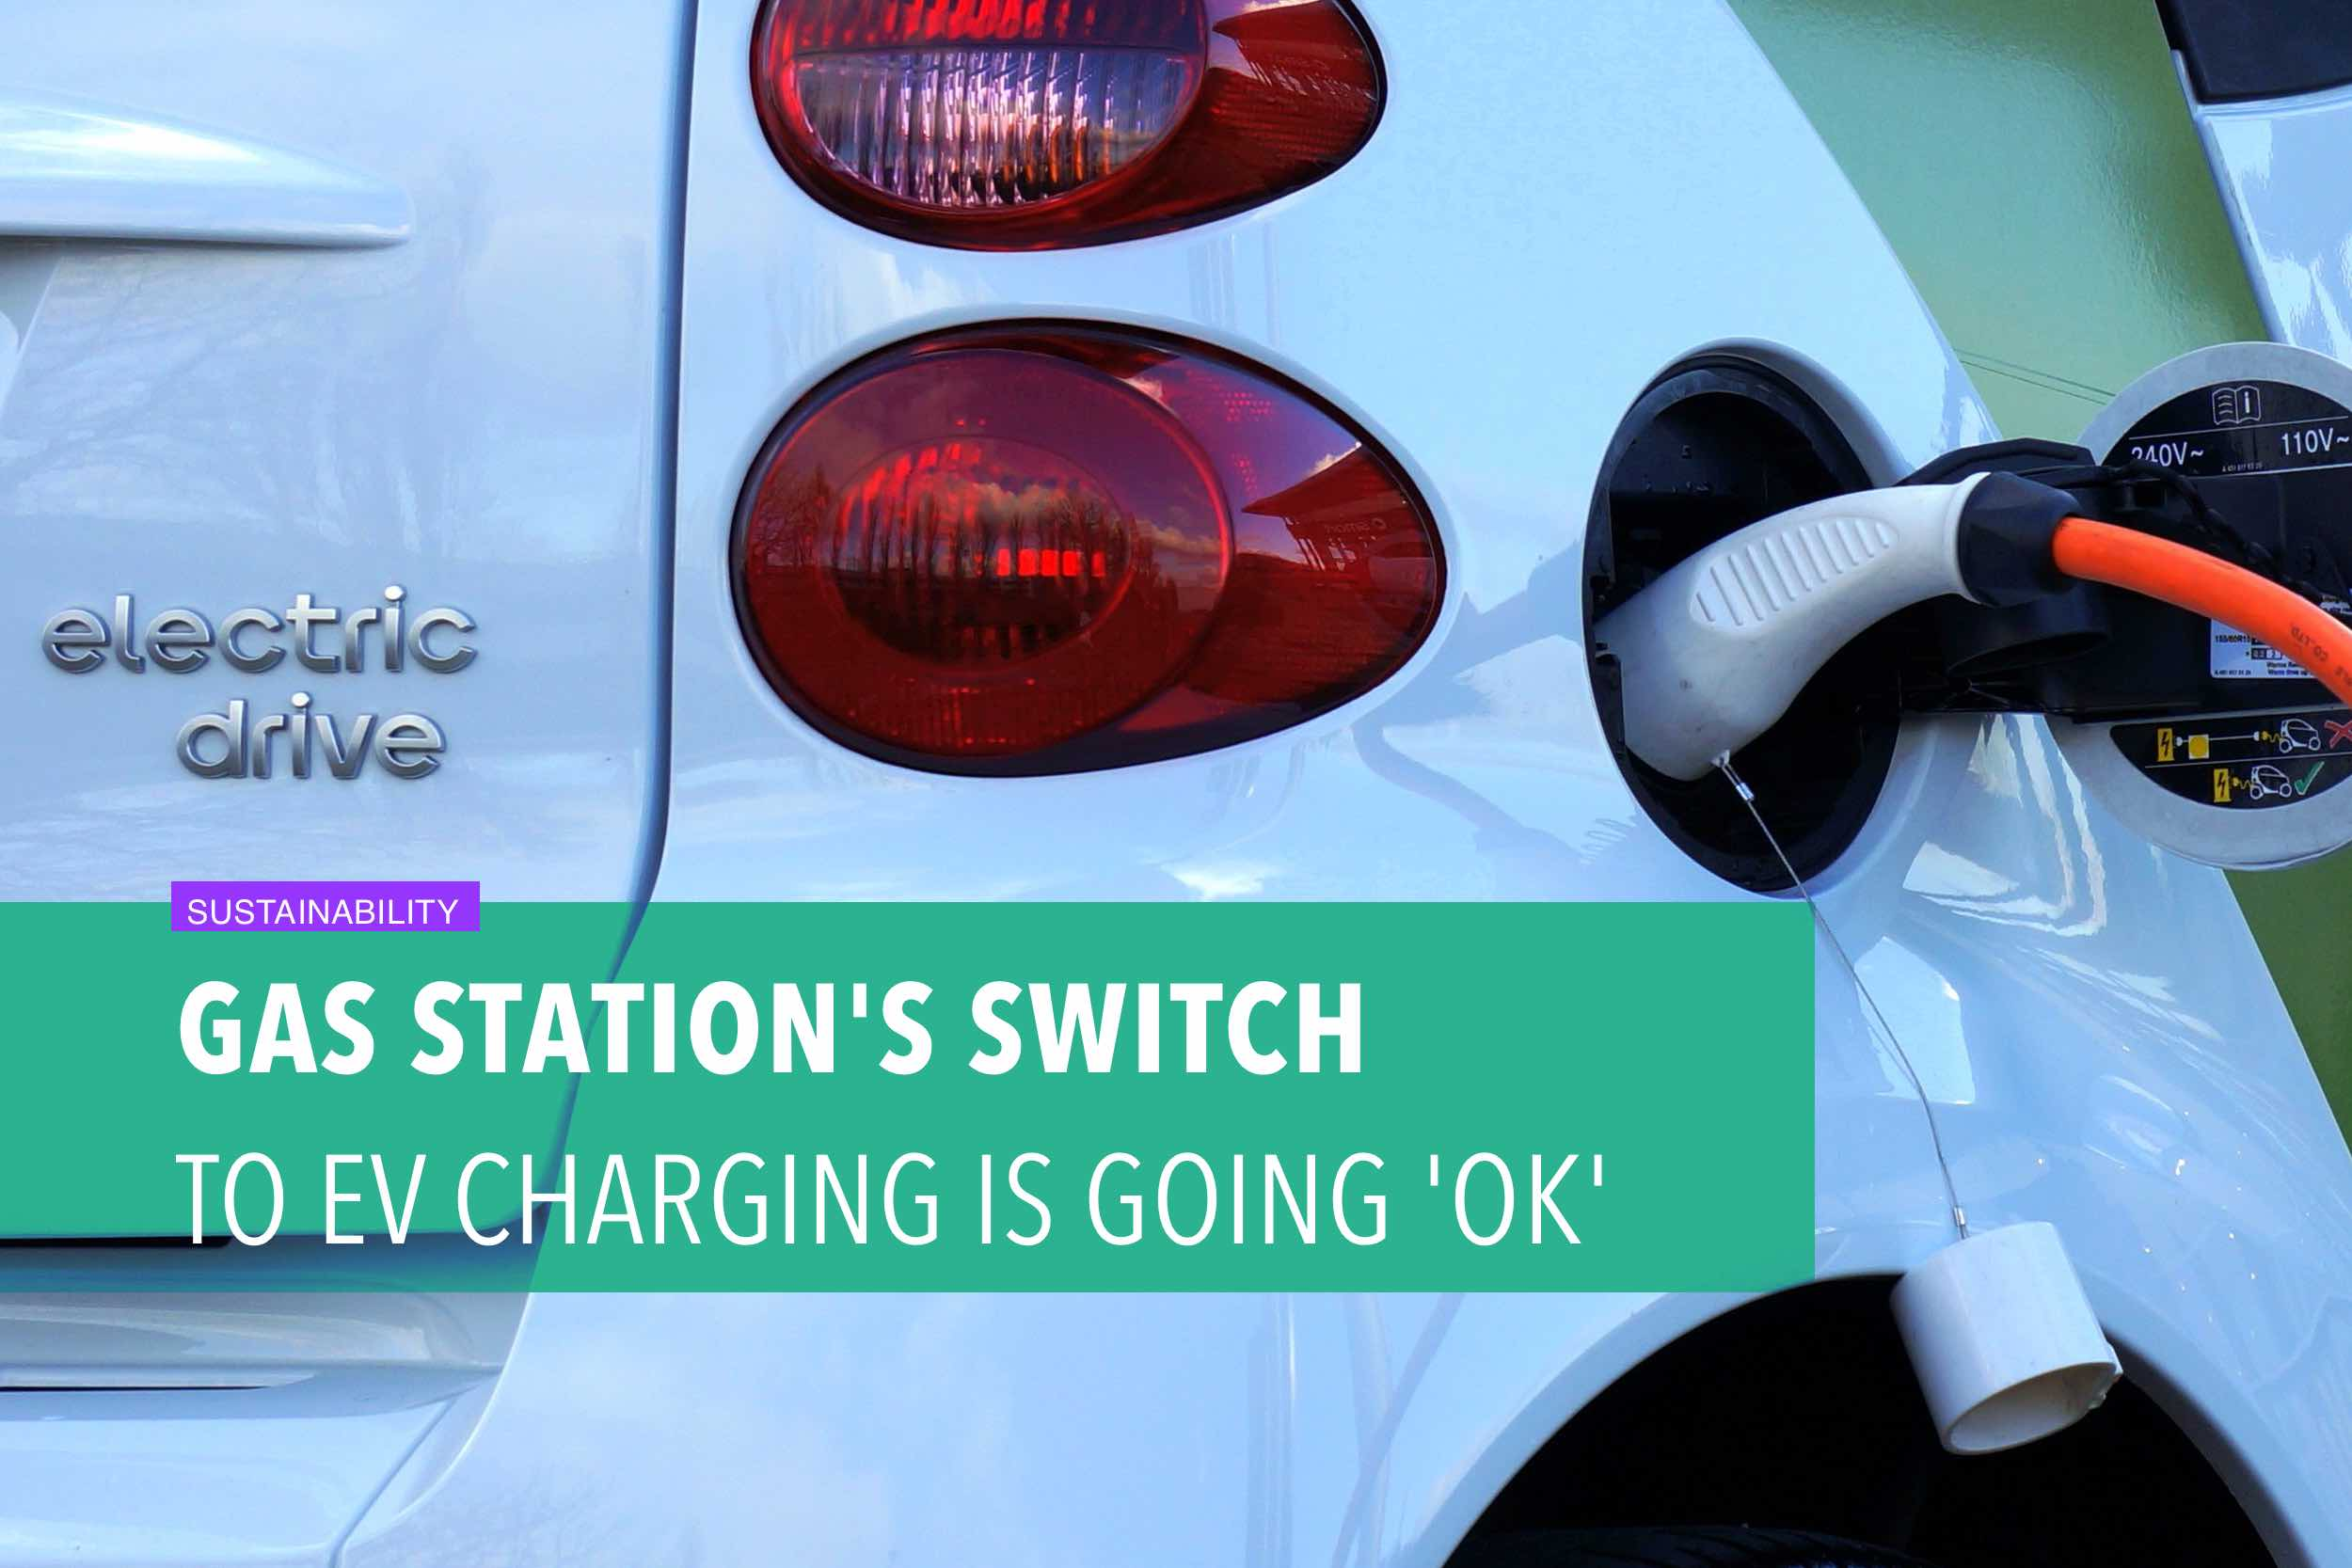 Gas station's switch to EV charging is going 'OK'